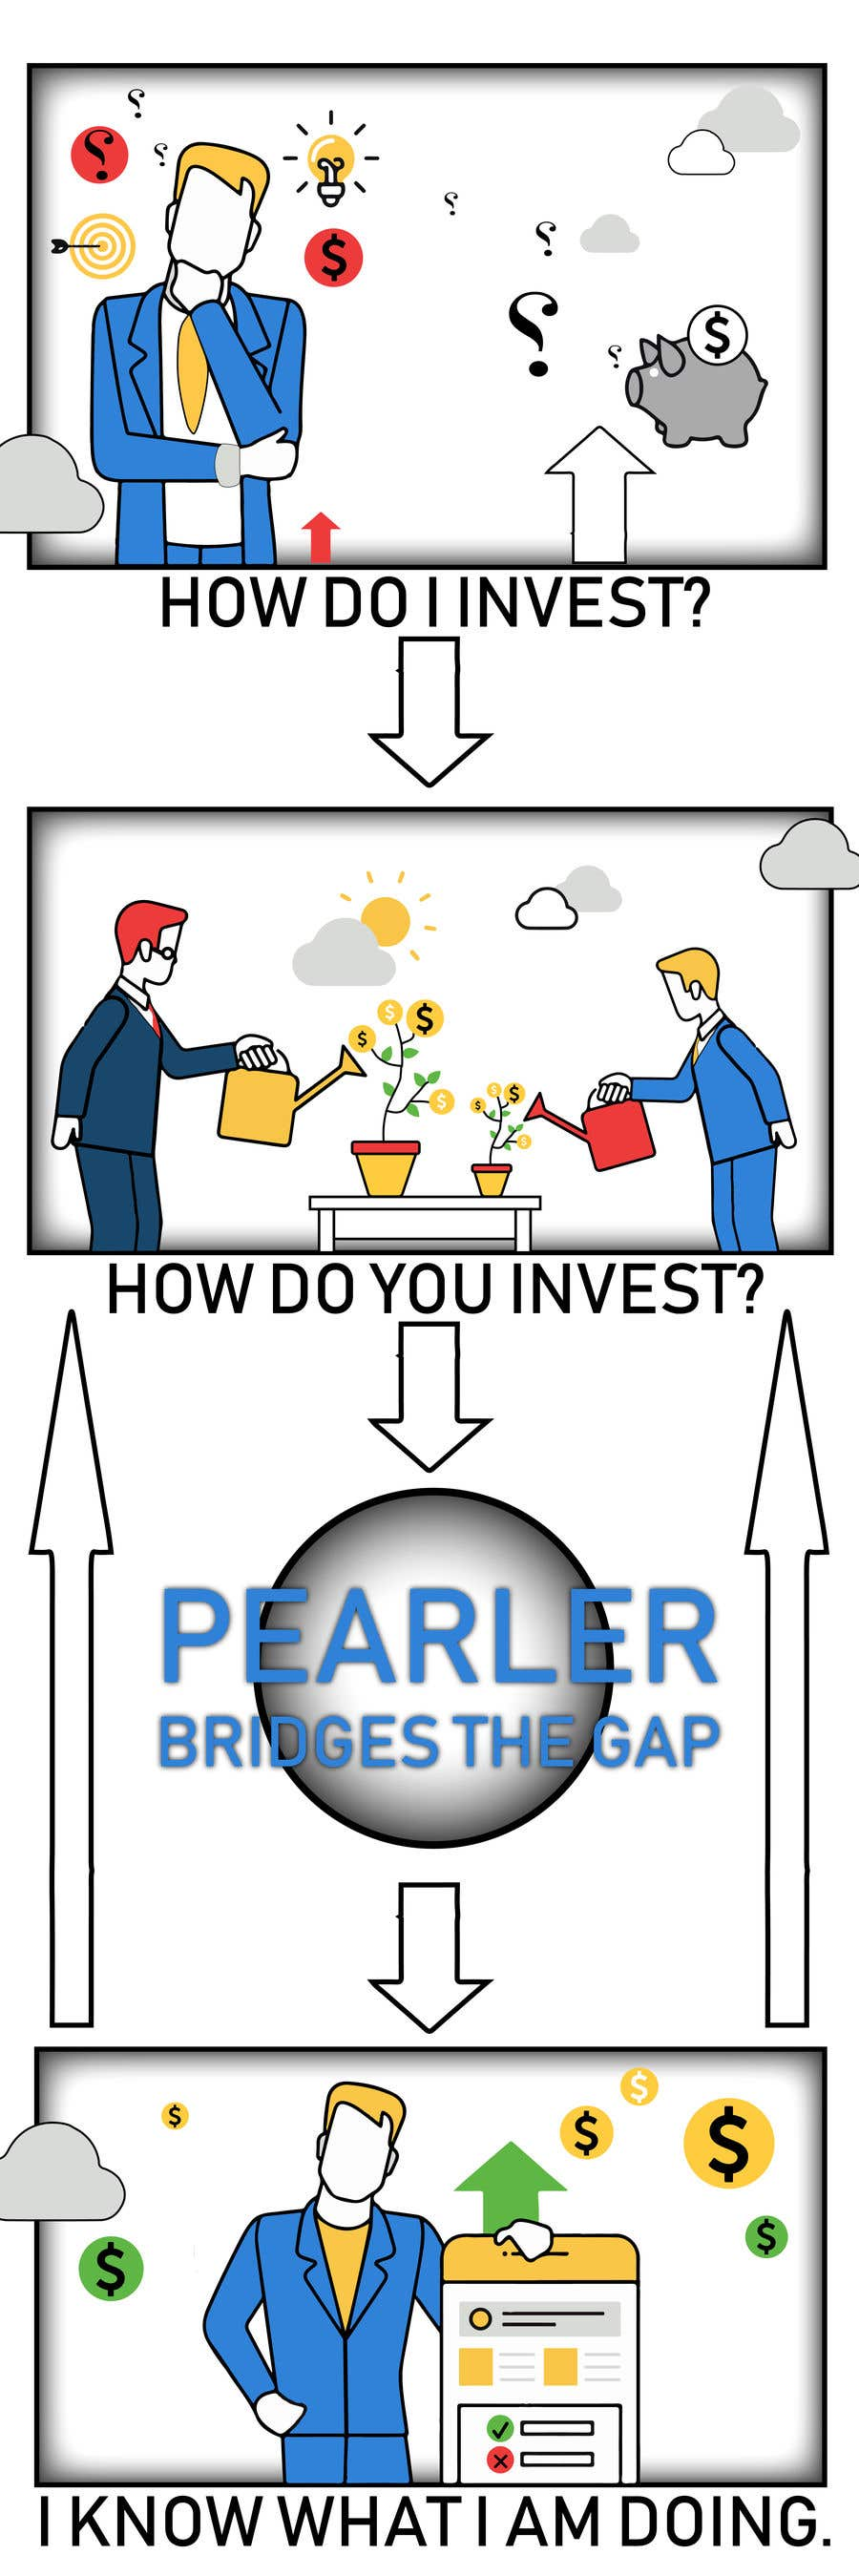 Konkurrenceindlæg #42 for Create a simple 2-part infographic that shows the normal investing process